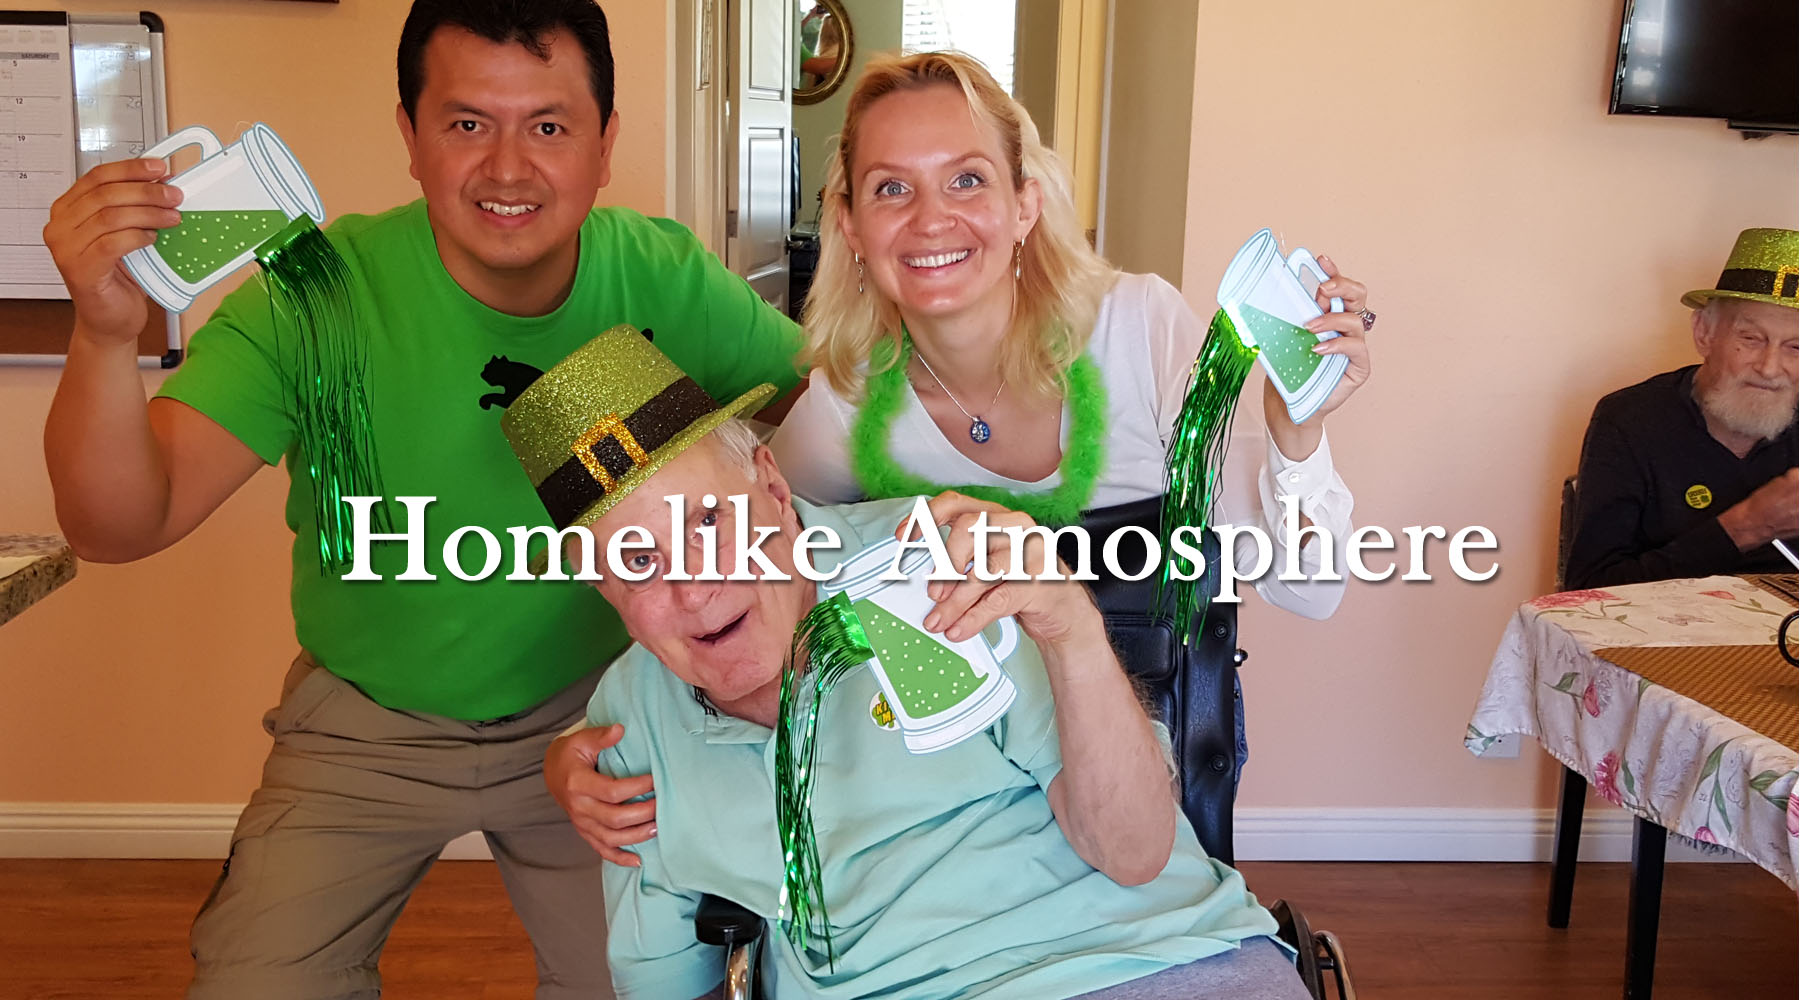 Assisted Living Santa Barbara homelike atmosphere for residents